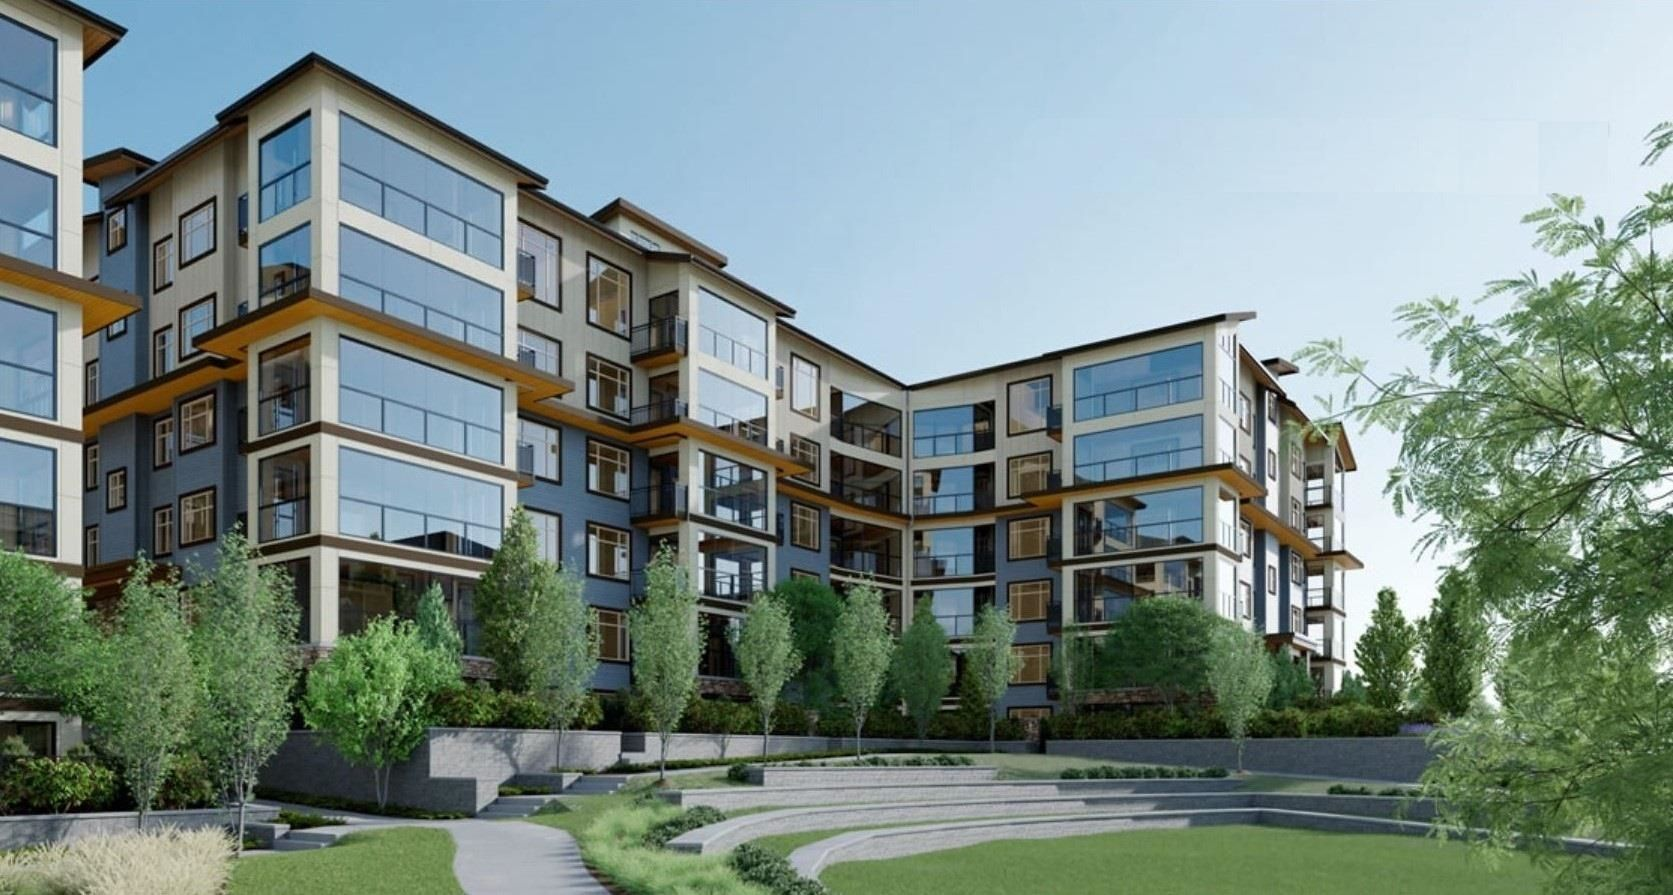 """Main Photo: 403 20325 85 Avenue in Langley: Willoughby Heights Condo for sale in """"YORKSON PARK"""" : MLS®# R2612041"""